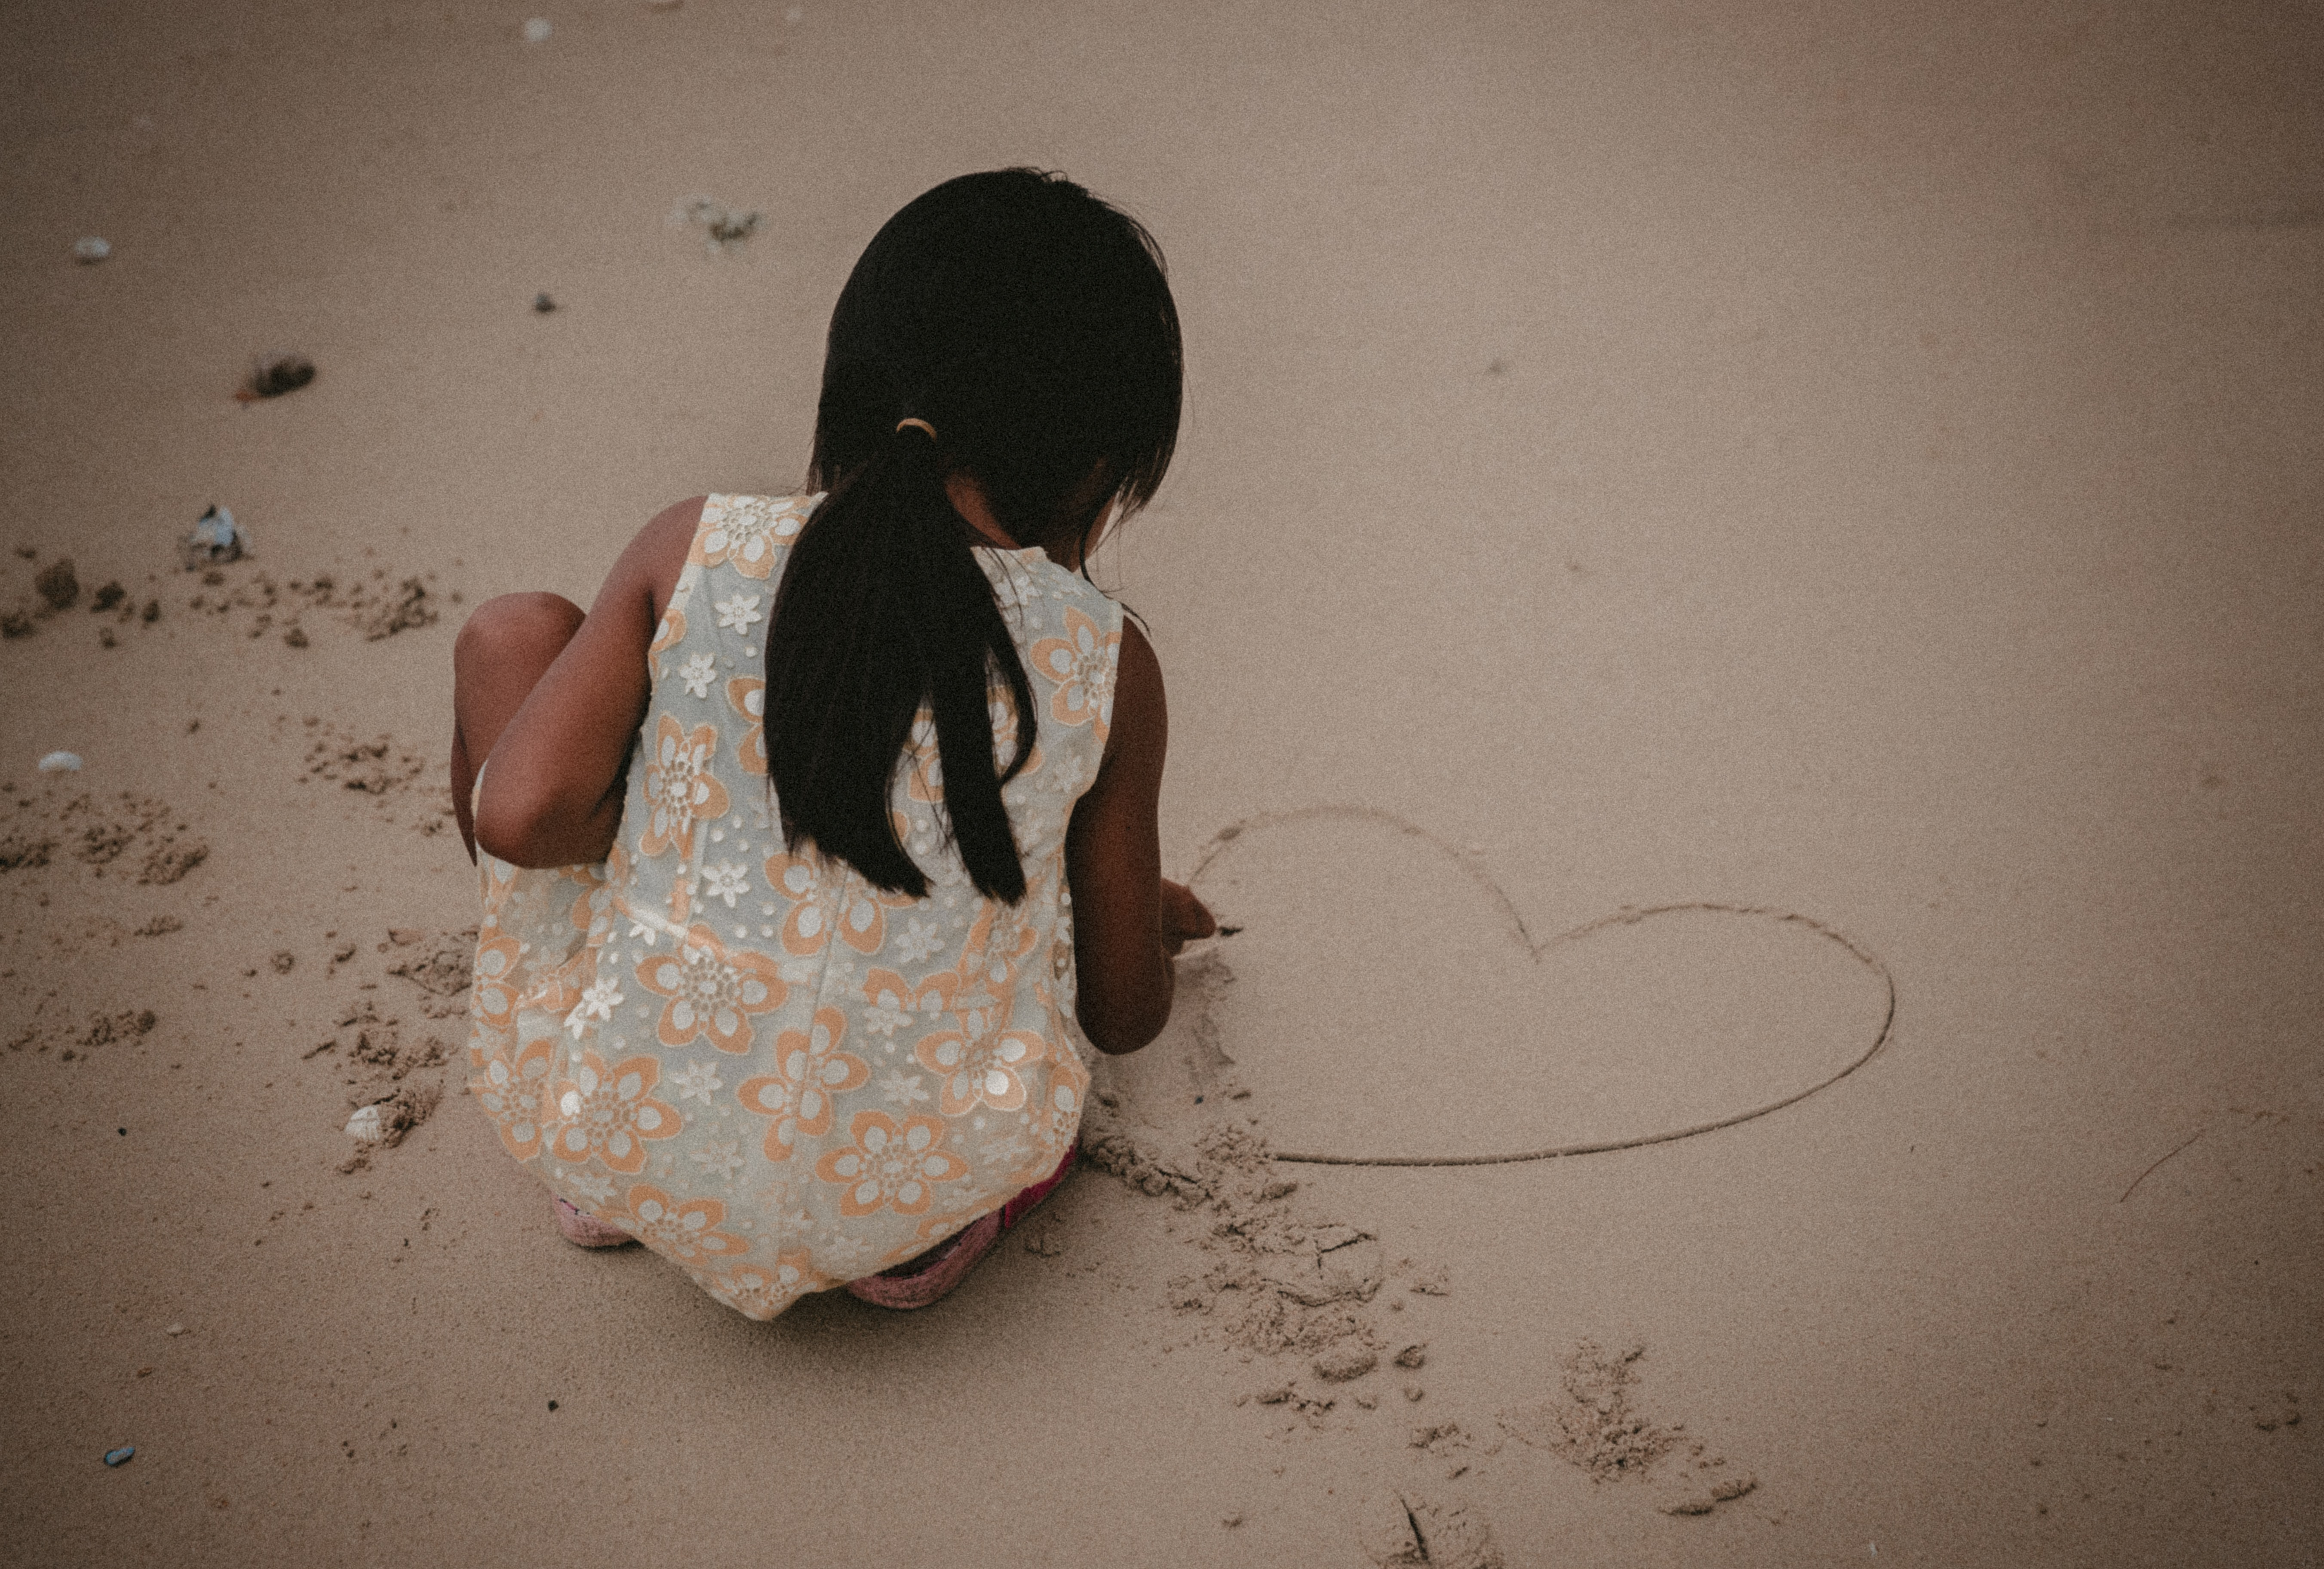 Child playing on the beach and drawing a heart in the sand